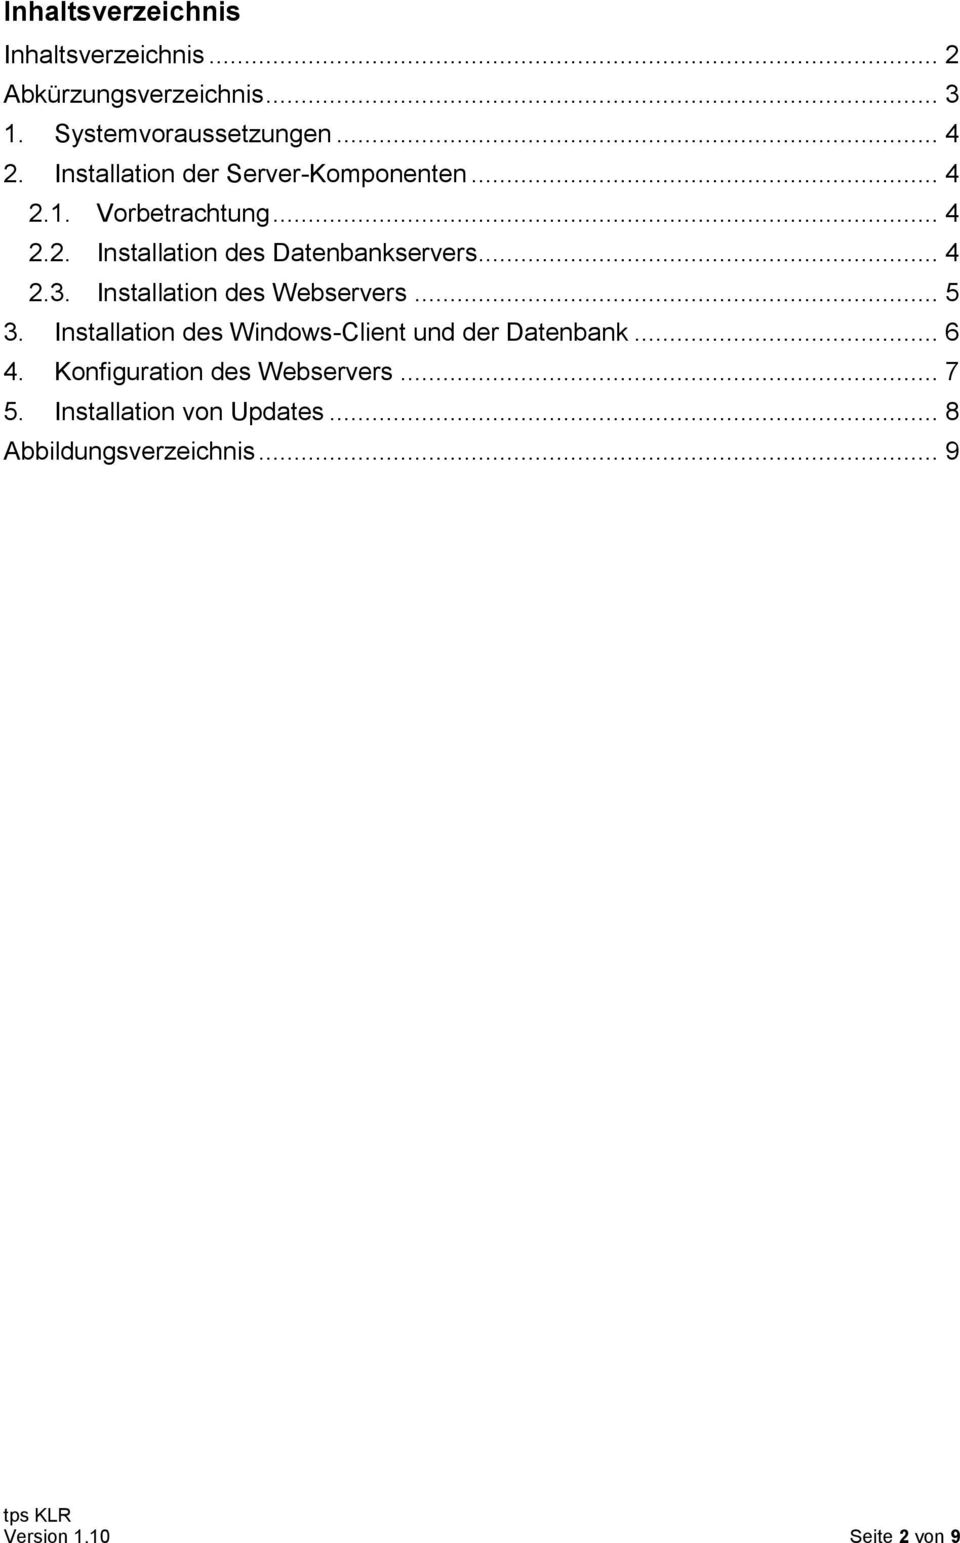 .. 4 2.3. Installation des Webservers... 5 3. Installation des Windows-Client und der Datenbank... 6 4.